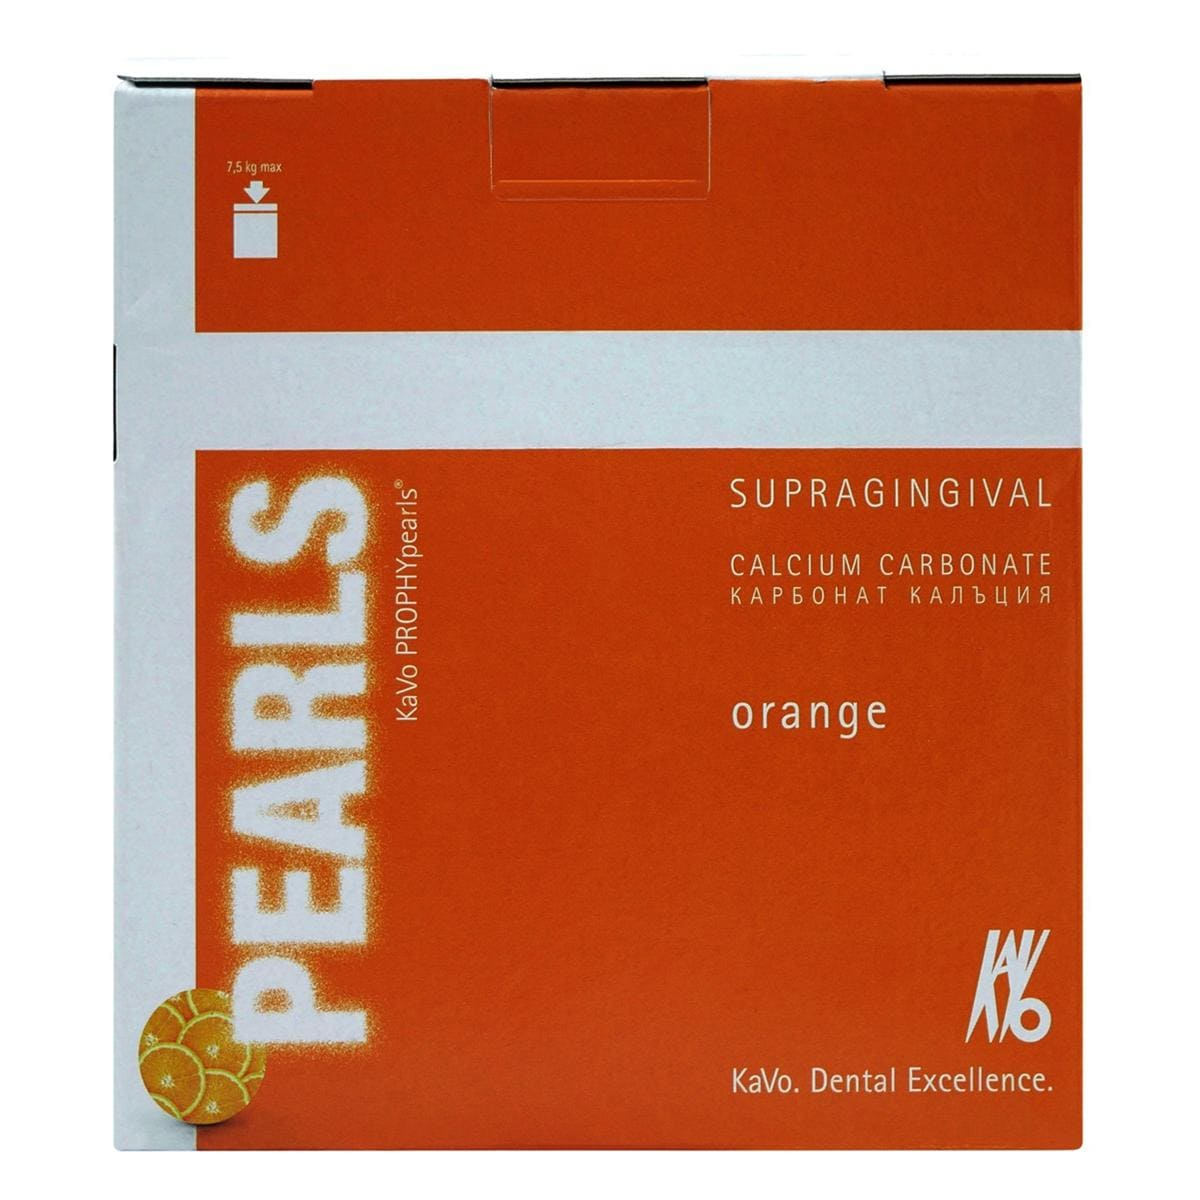 Prophy Pearls Sachets 15g Orange 80pk